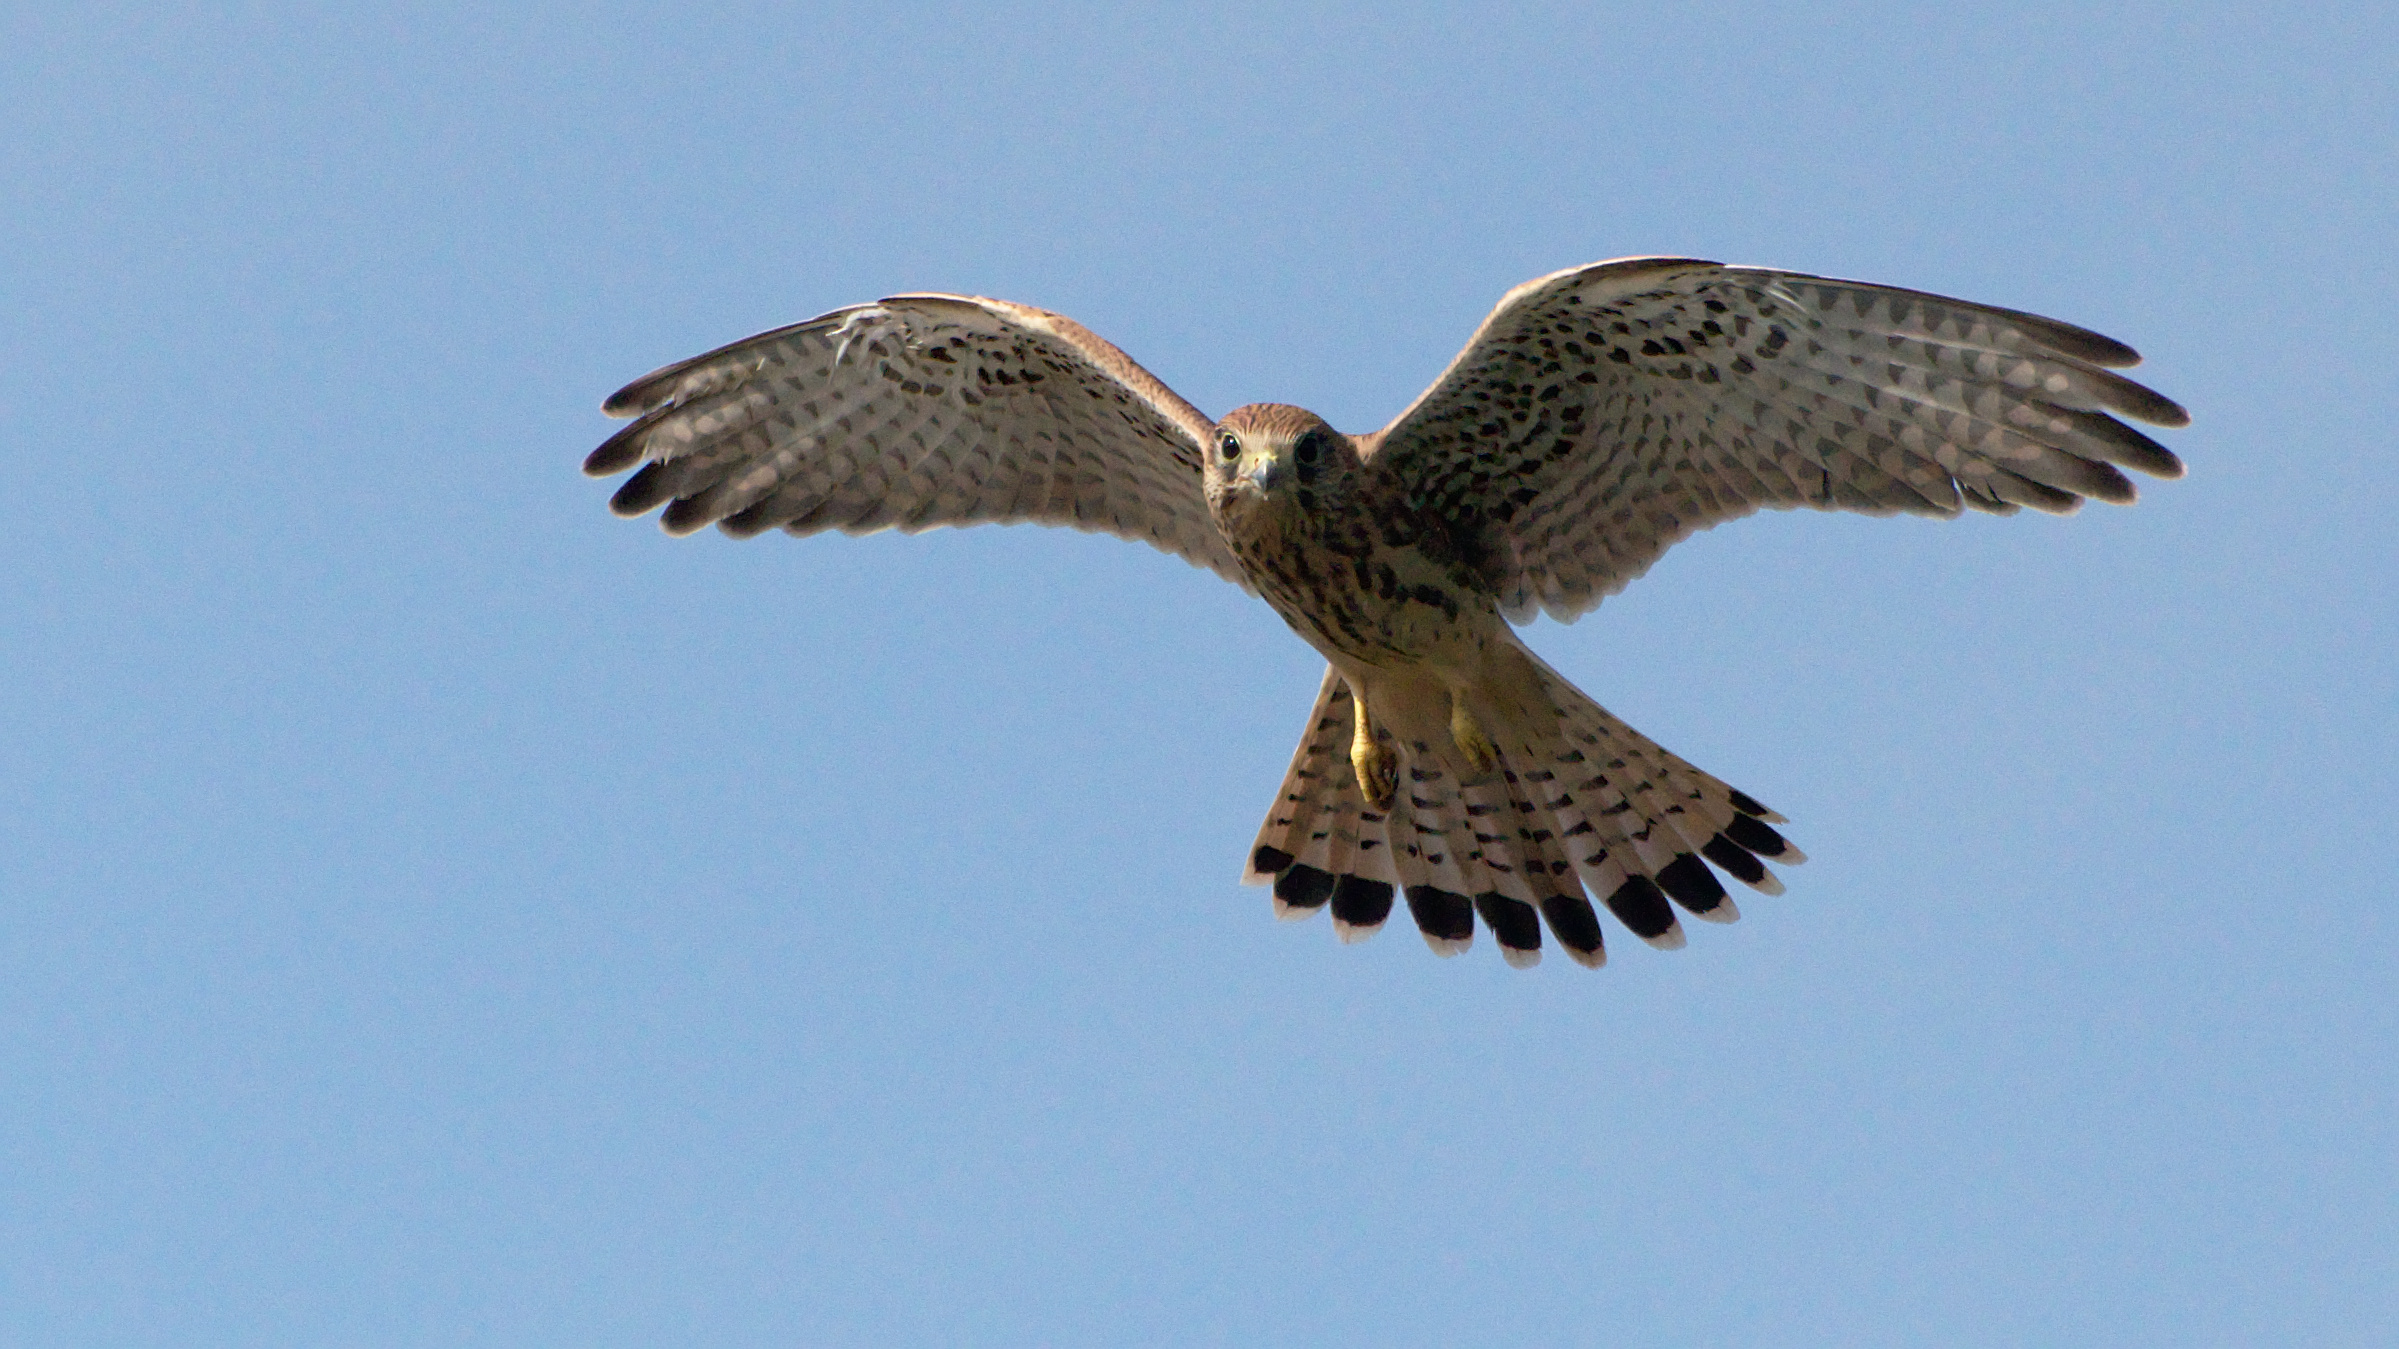 Kestrel head-on with wings spread and tail fanned